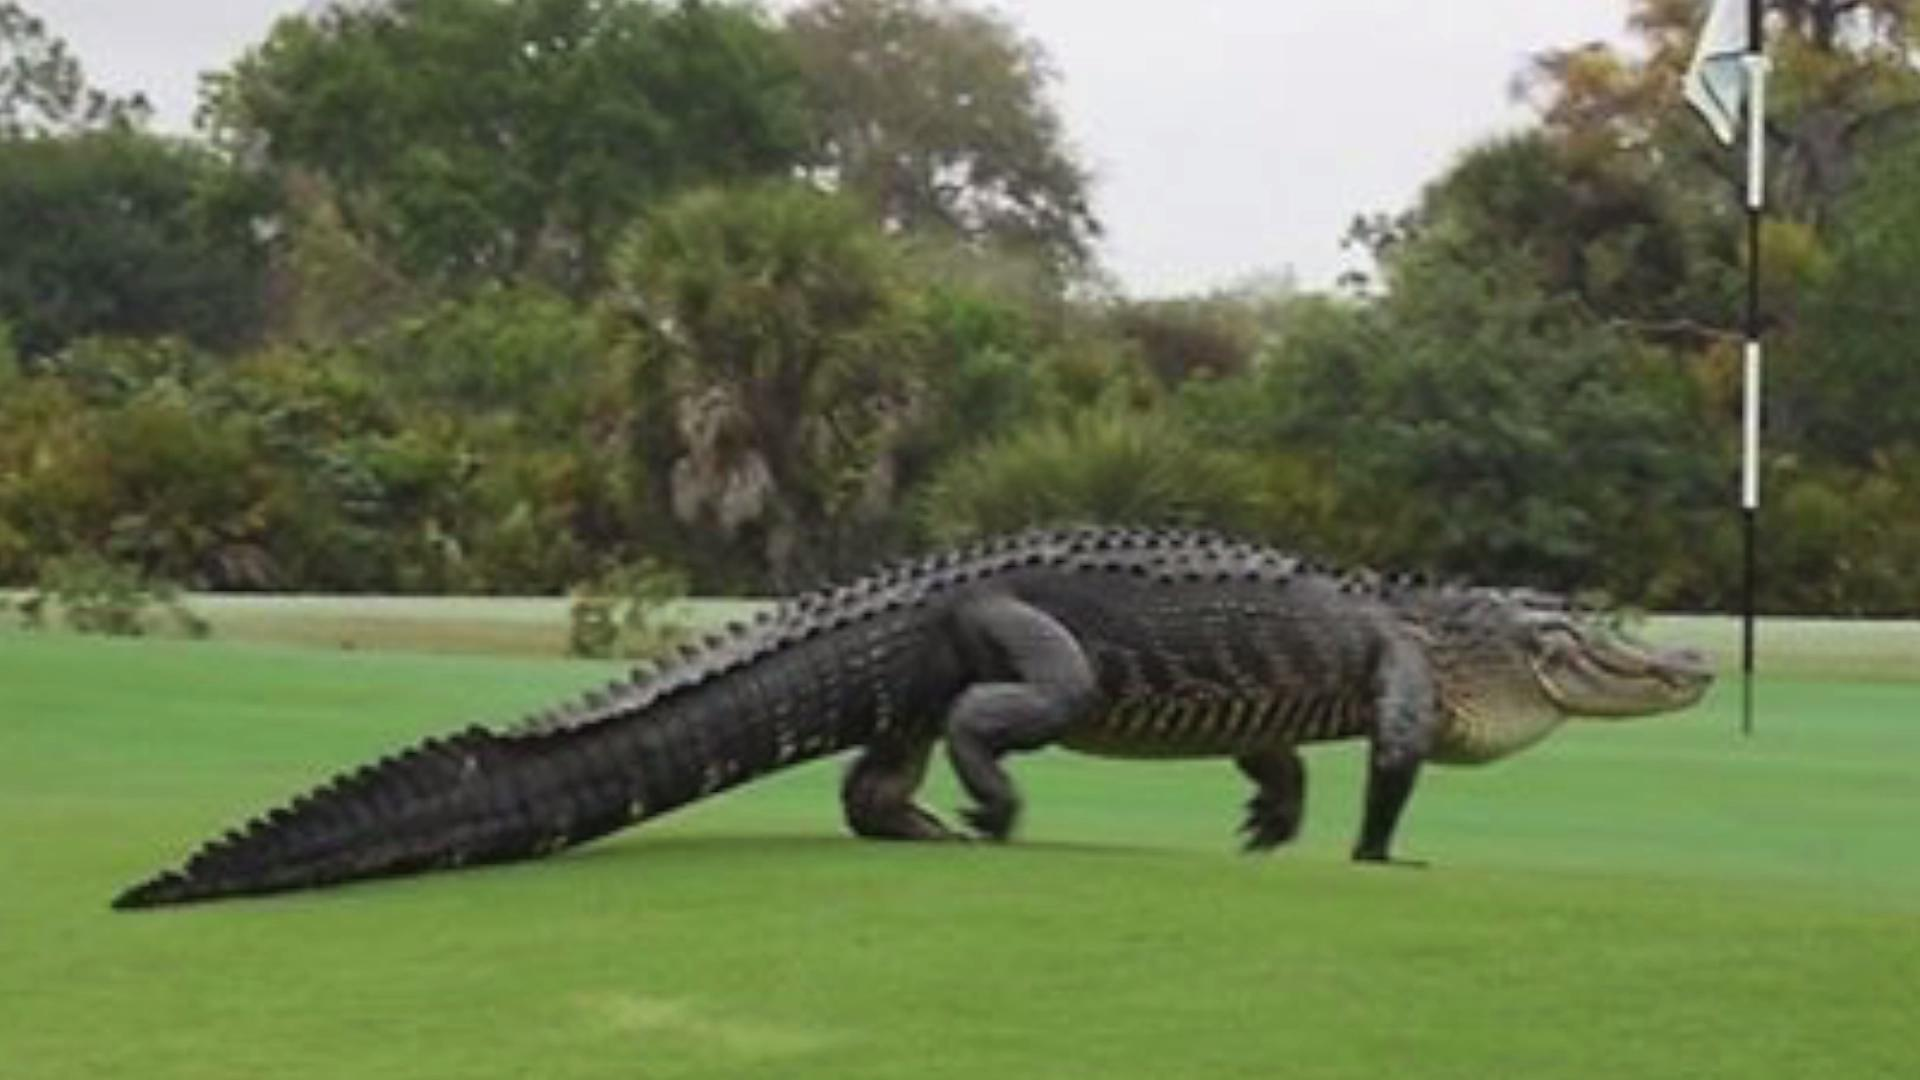 Massive Alligator Spotted at Florida Golf Club